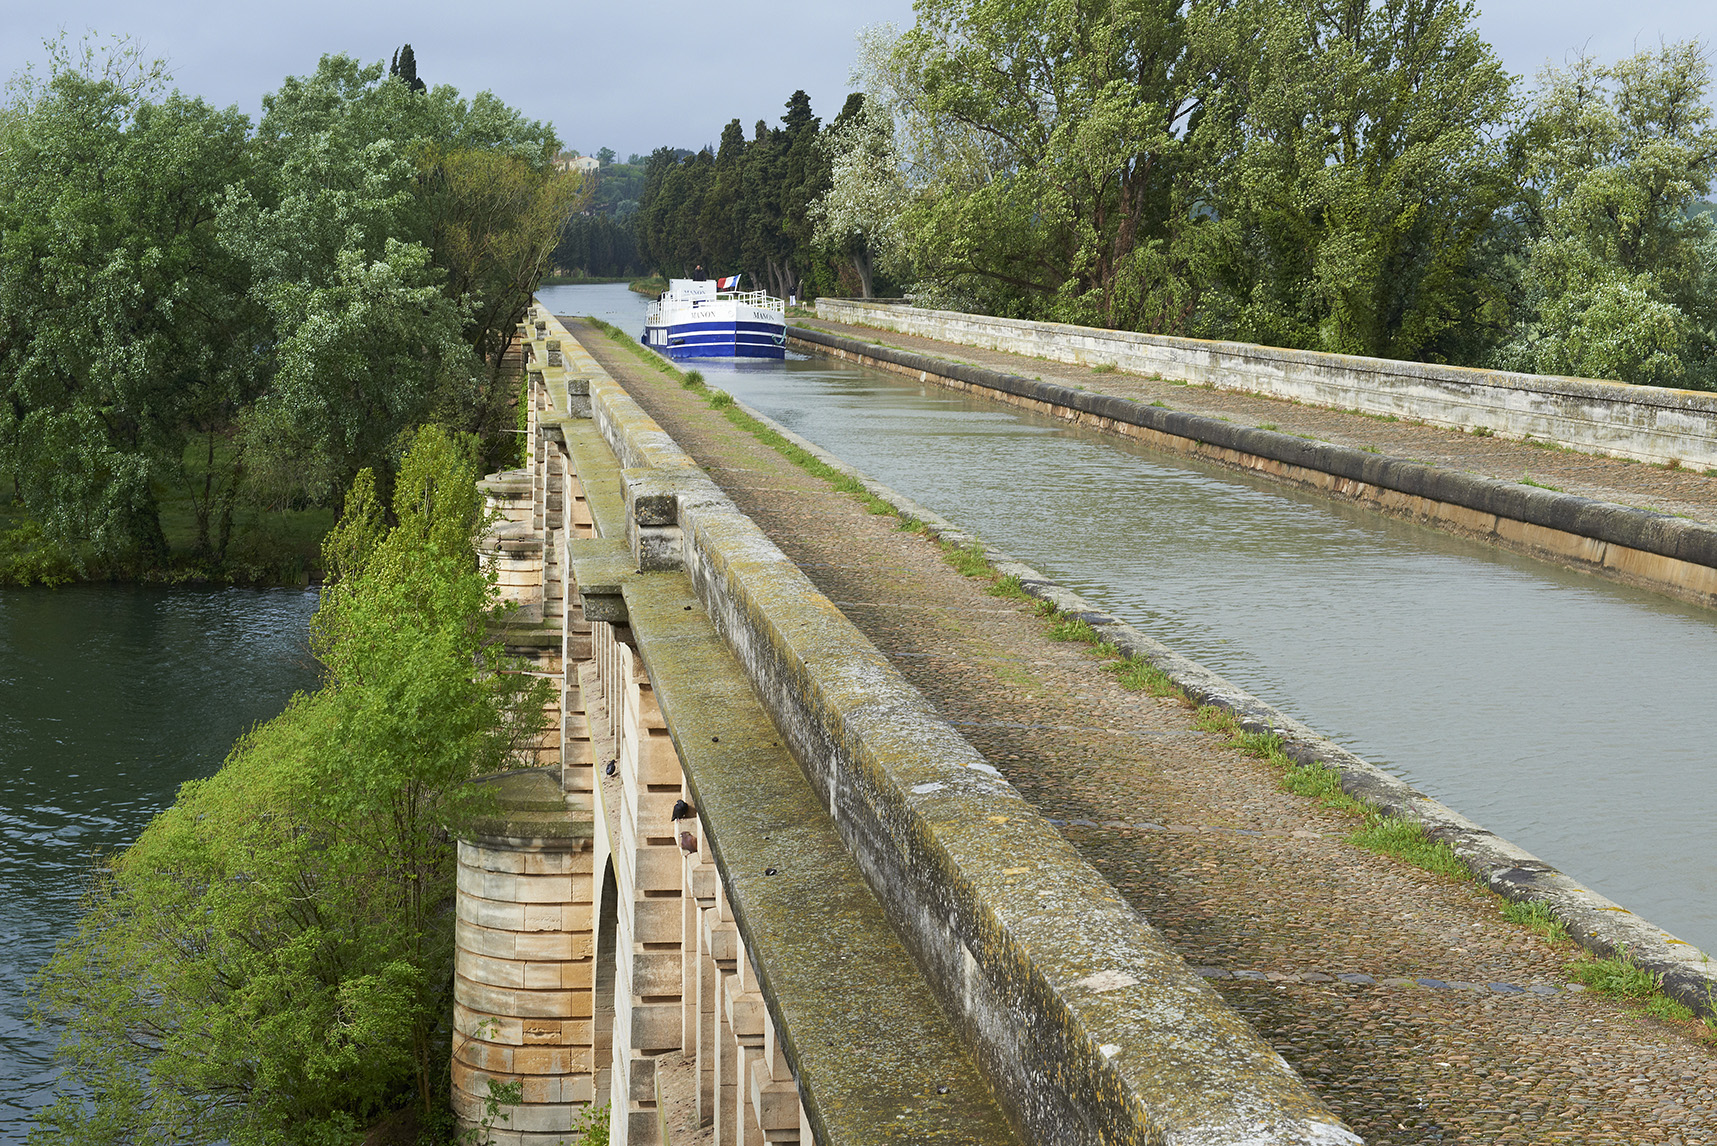 France, Herault department, canal bridge of Beziers, the Canal du Midi